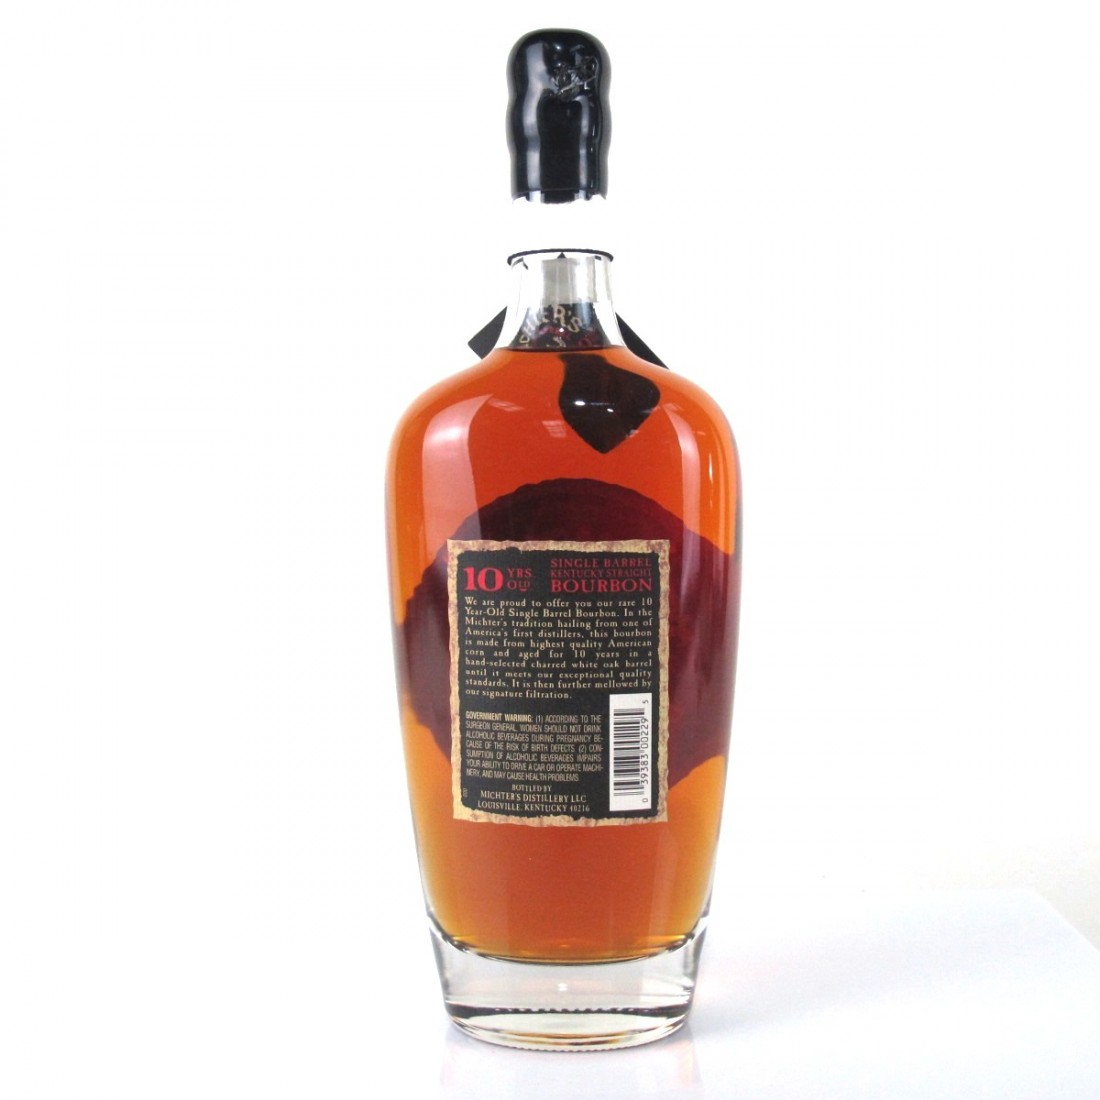 Michters 10 Year Old Single Barrel Bourbon | Whisky